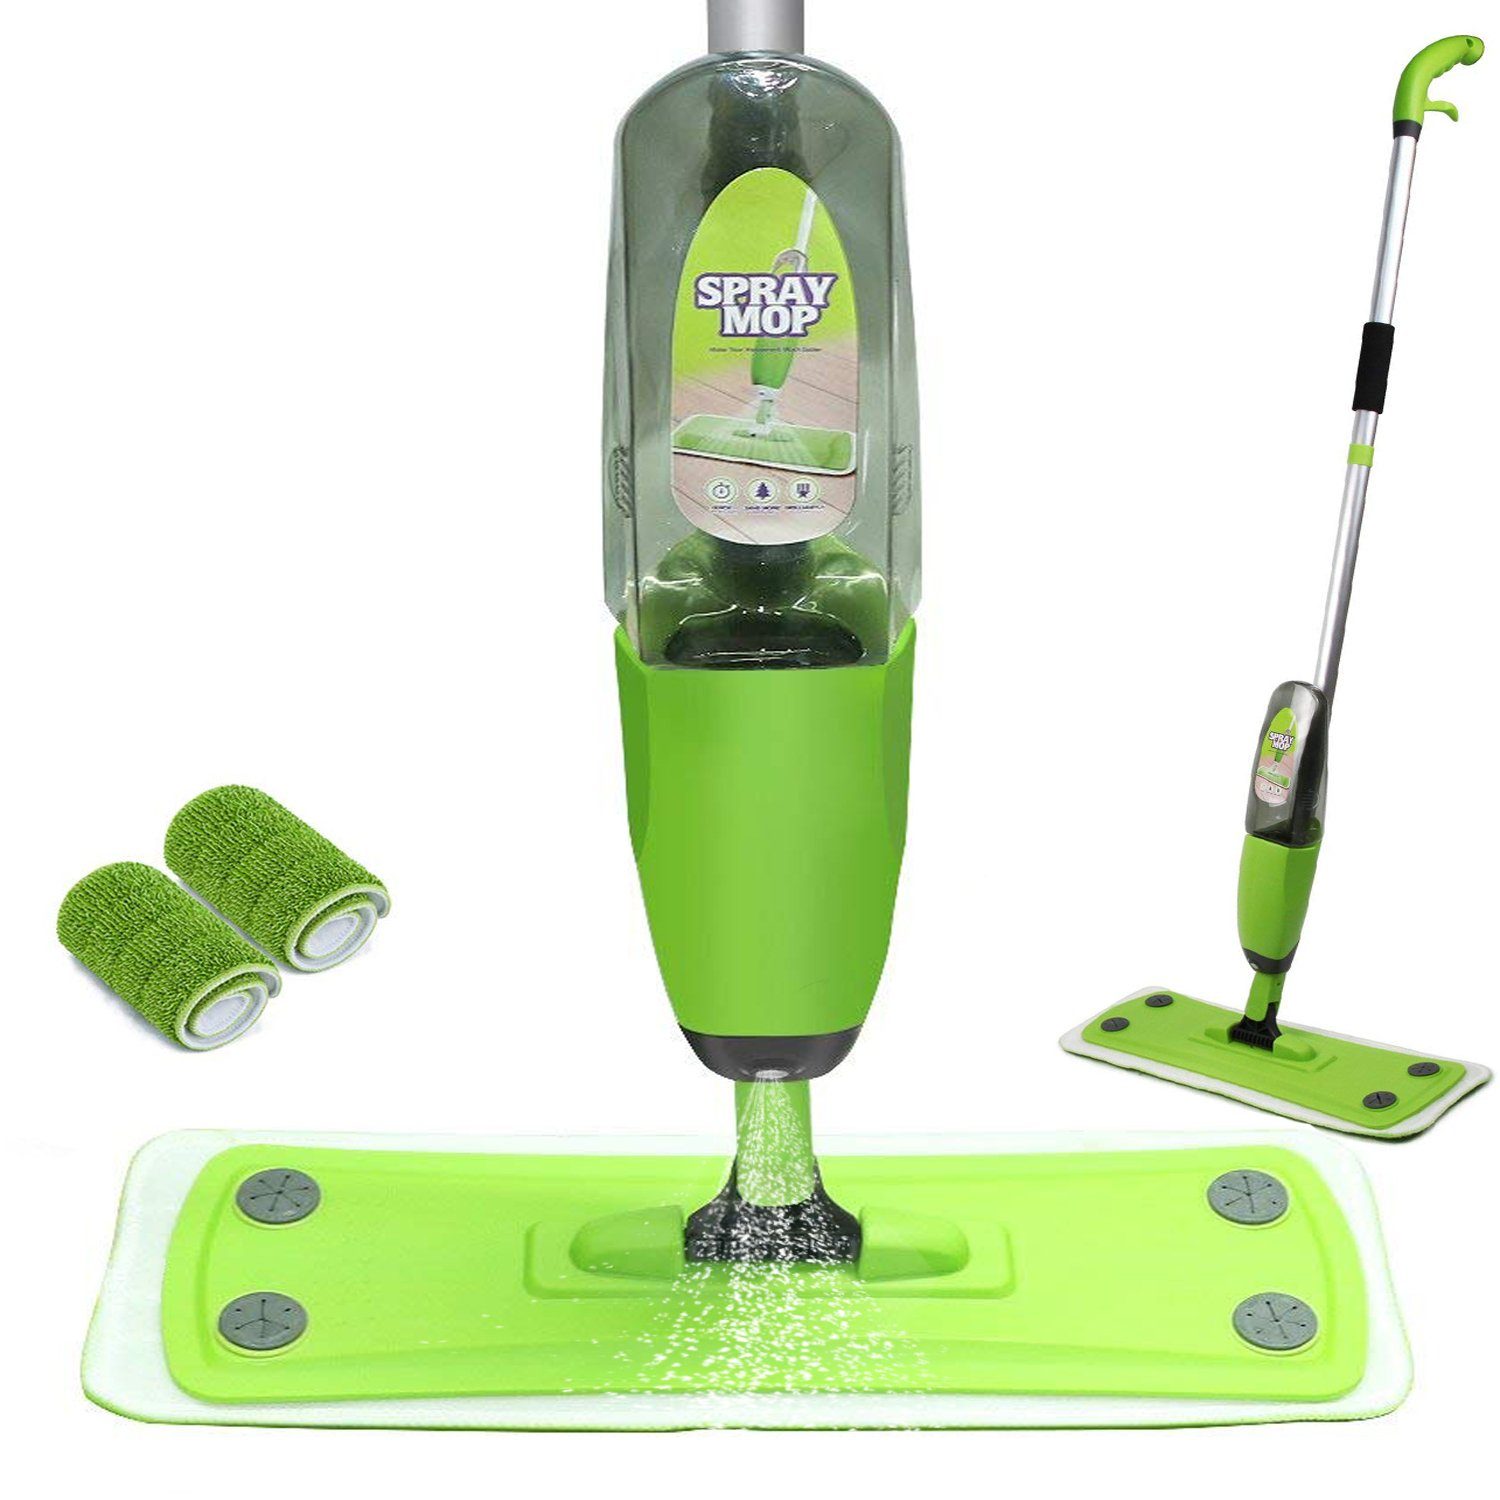 Microfiber Spray Mop -2 Reusable Flat Mop Pads and Extension Included, for Wet or Dry Floor Cleaning ,Heads Household Cleaning for Kitchen,Home,Hardwood